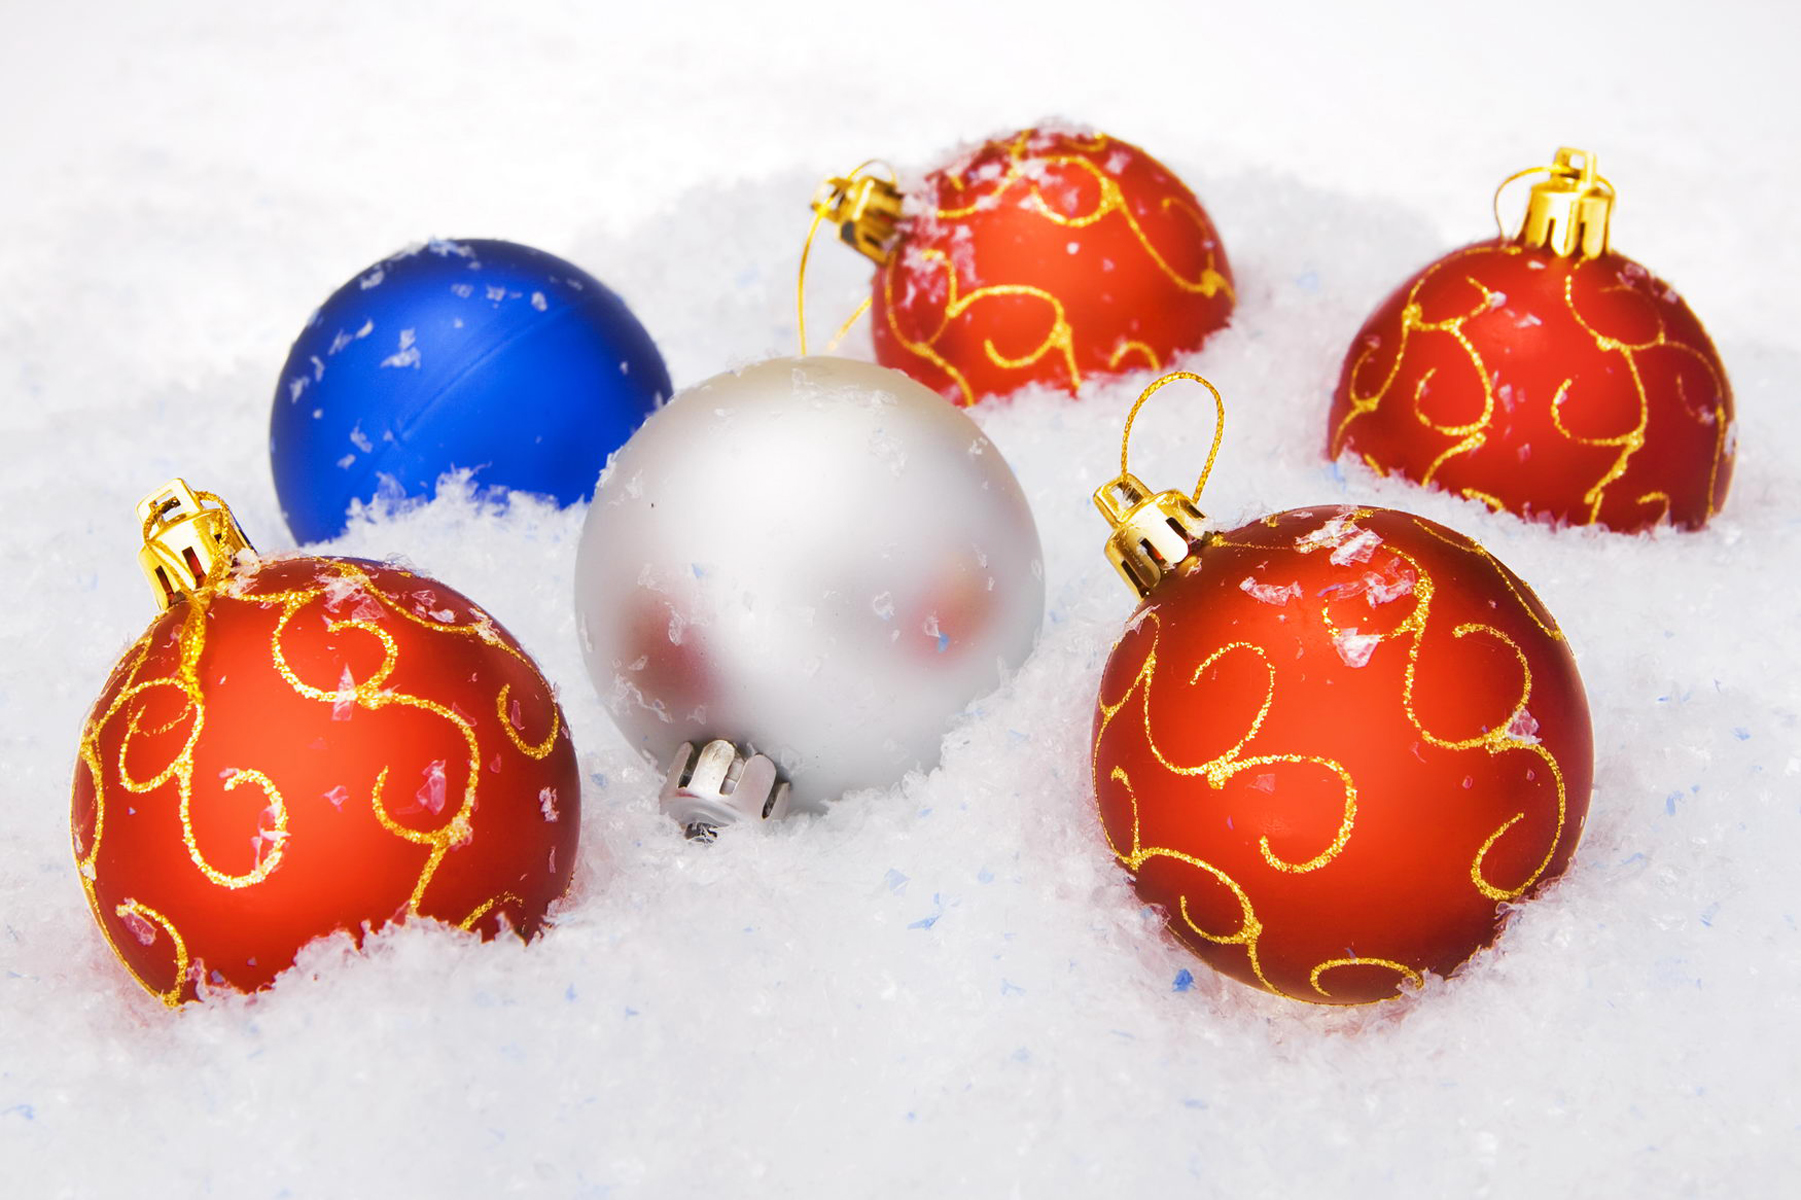 Christmas balls, Ball, Merry, Winter, White, HQ Photo